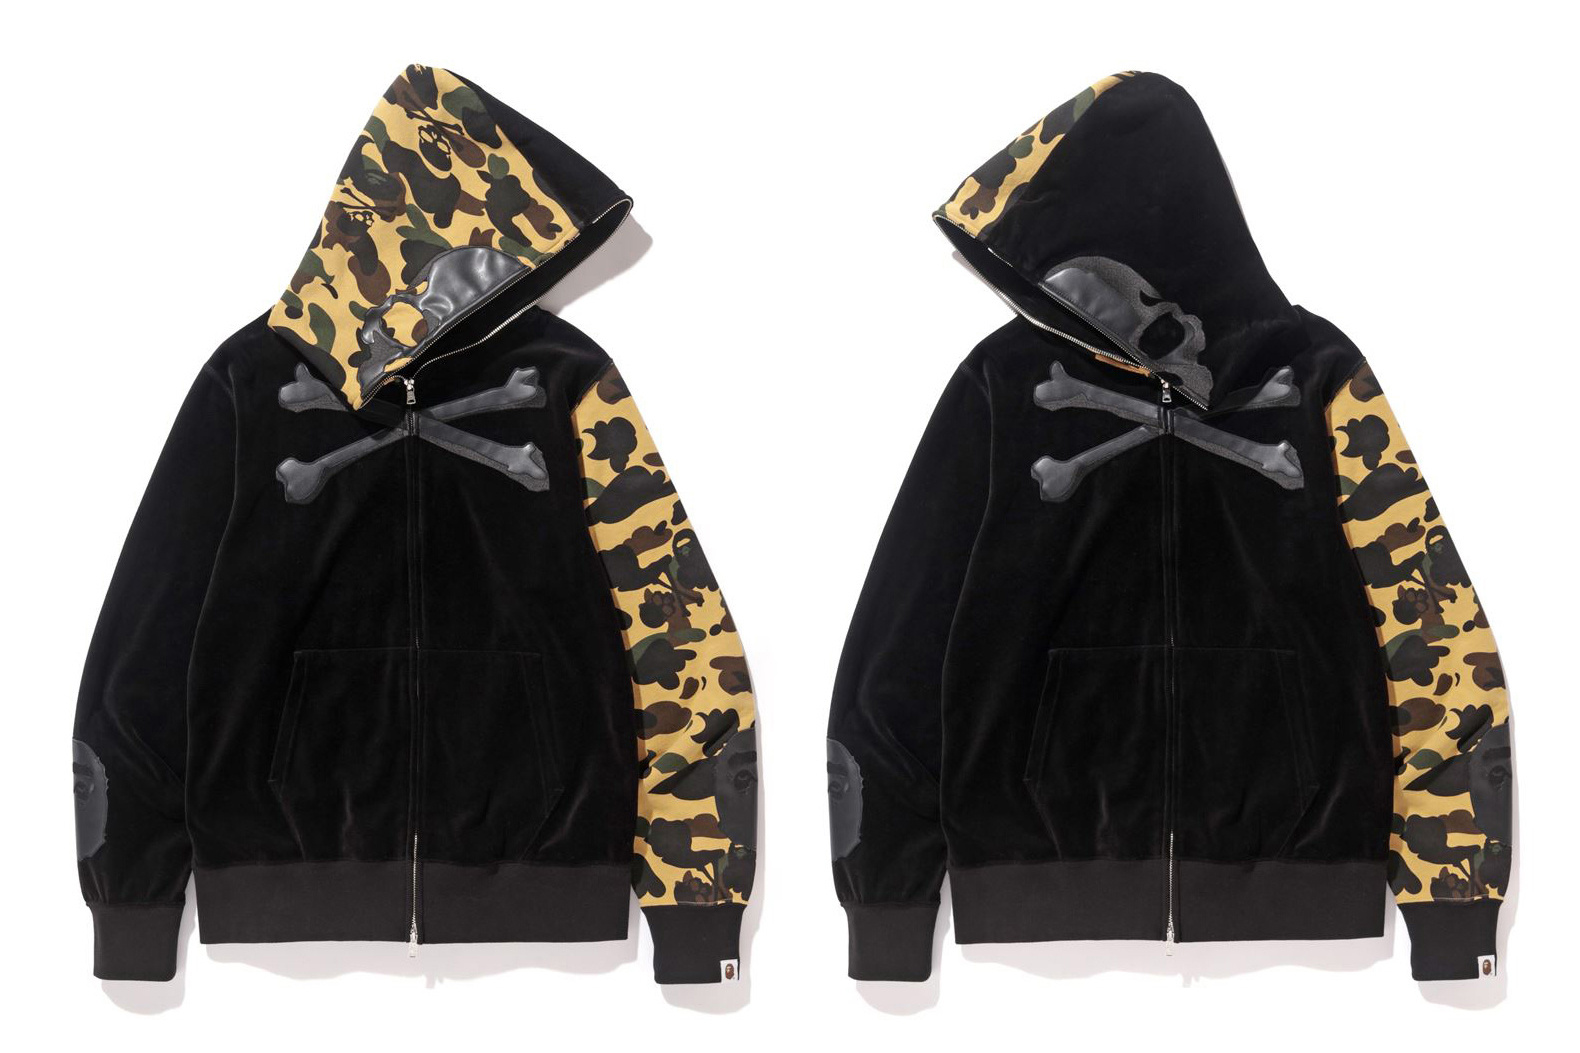 bape-x-mastermind-japan-2016-fall-winter-collaboration-00012